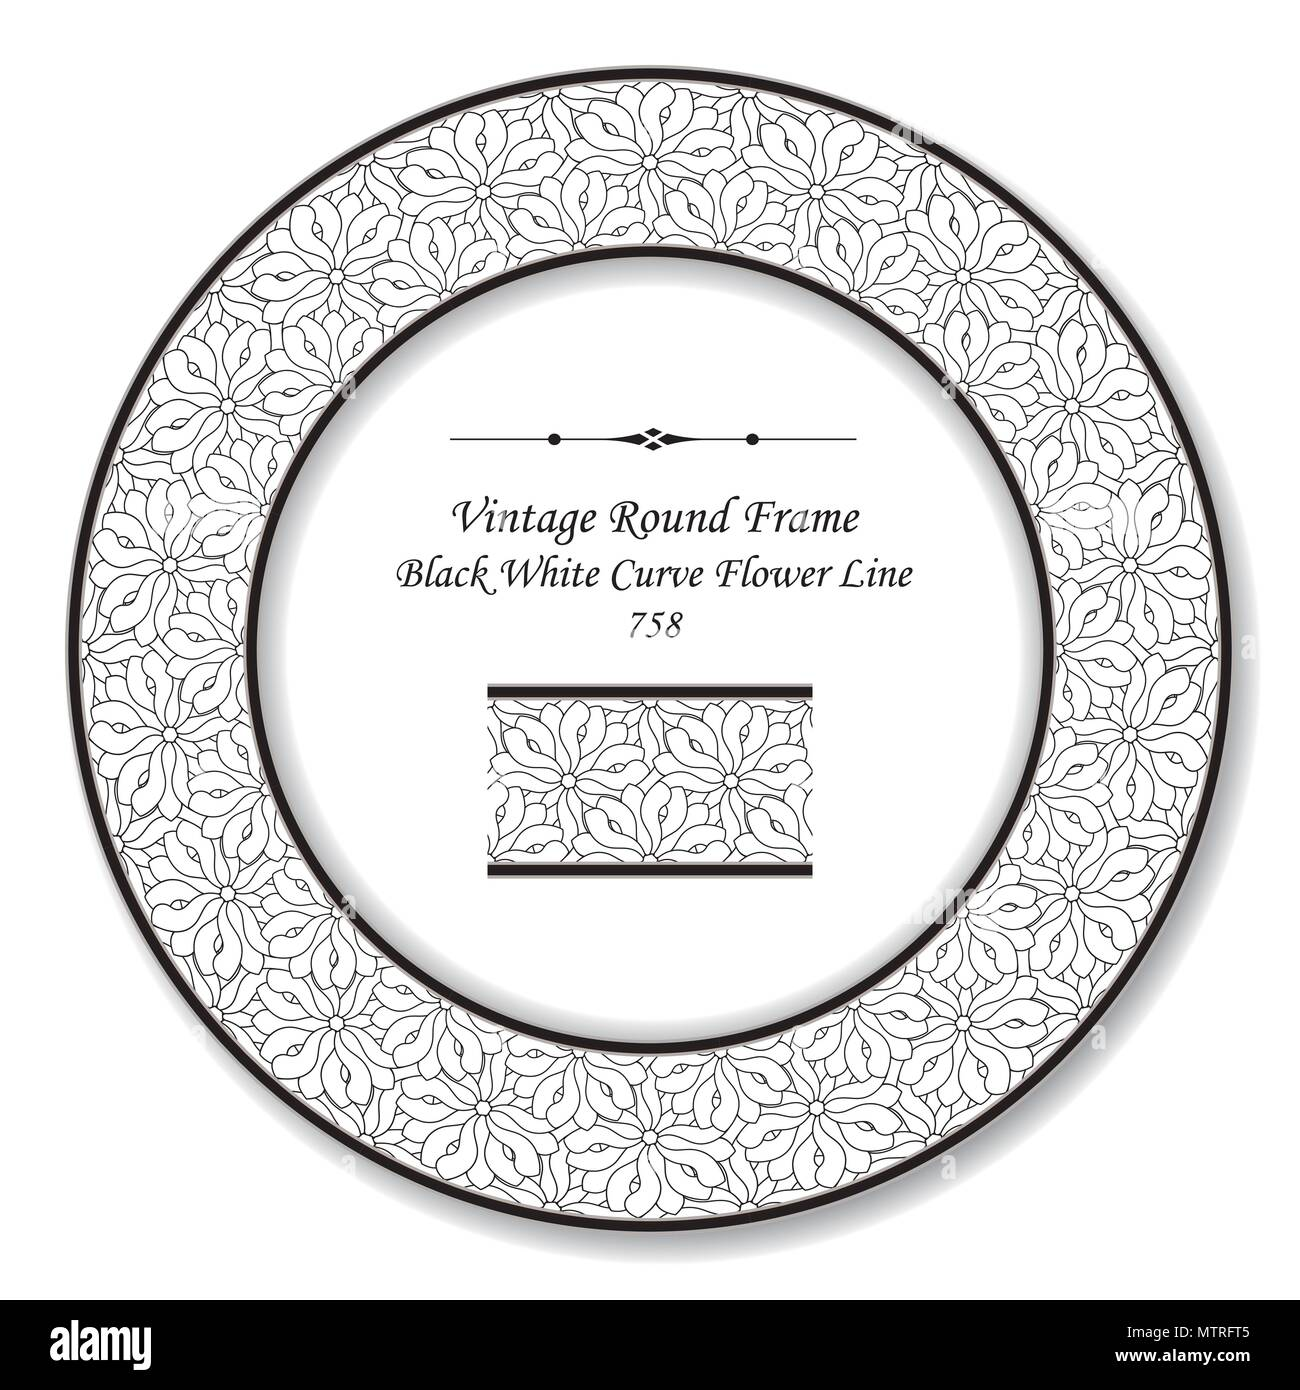 Vintage Round Retro Frame black white curve flower line, antique style template ideal for invitation or greeting card design. - Stock Image